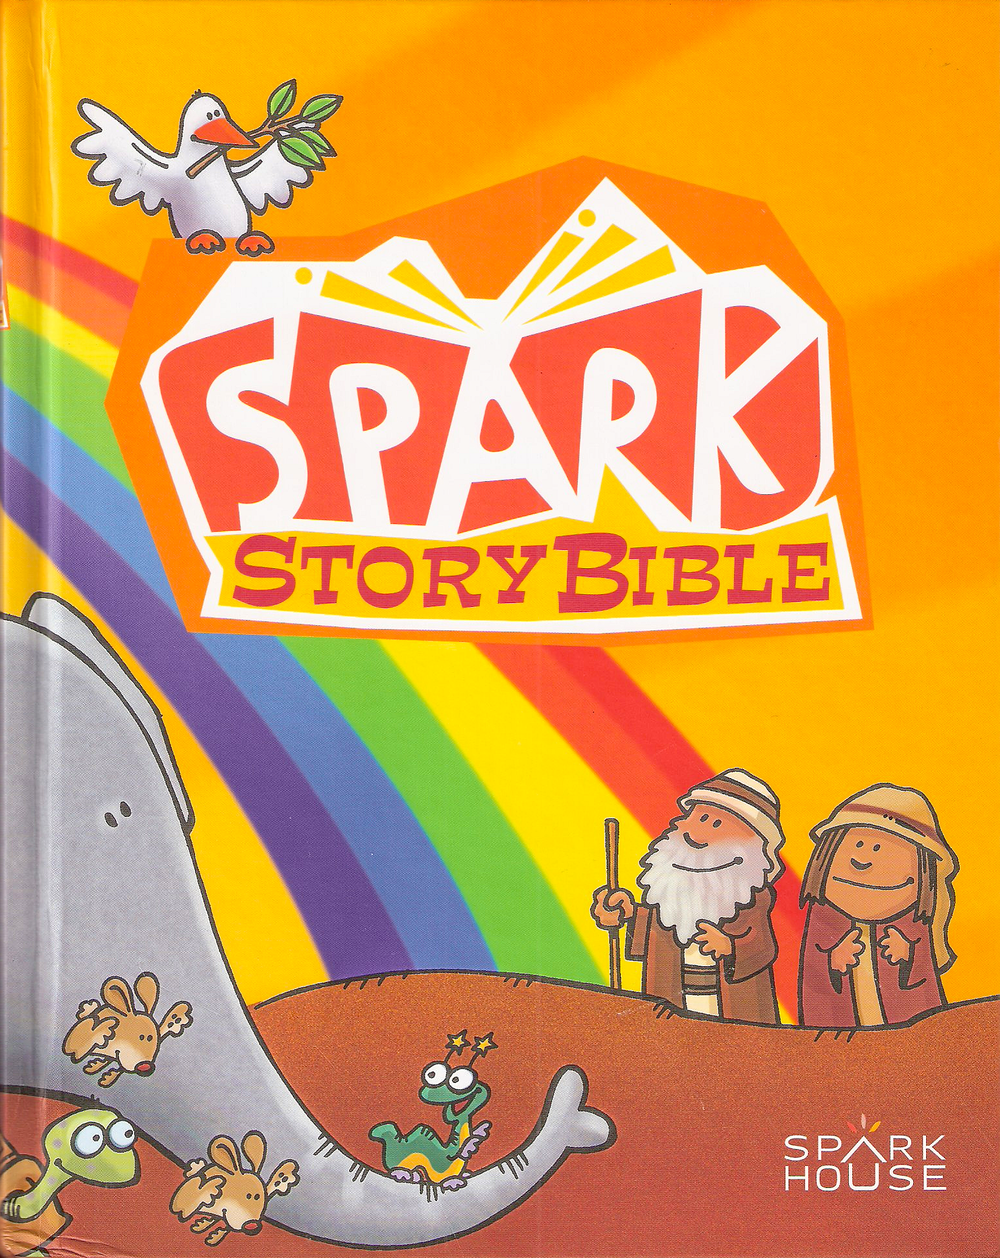 Spark Story Bible.png